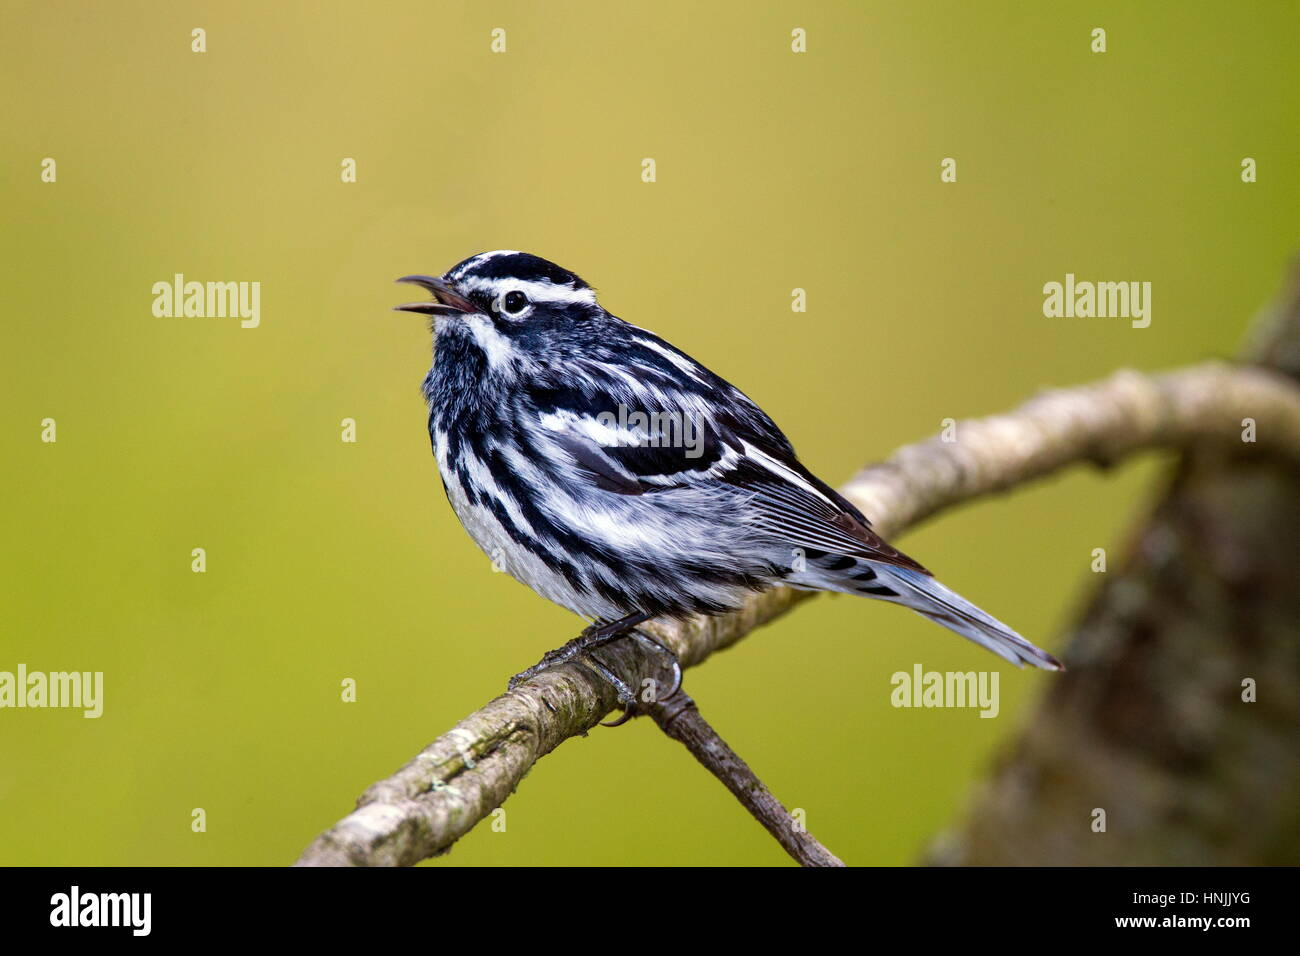 A male black and white warbler, Mniotilta varia, singing a territorial song. Stock Photo